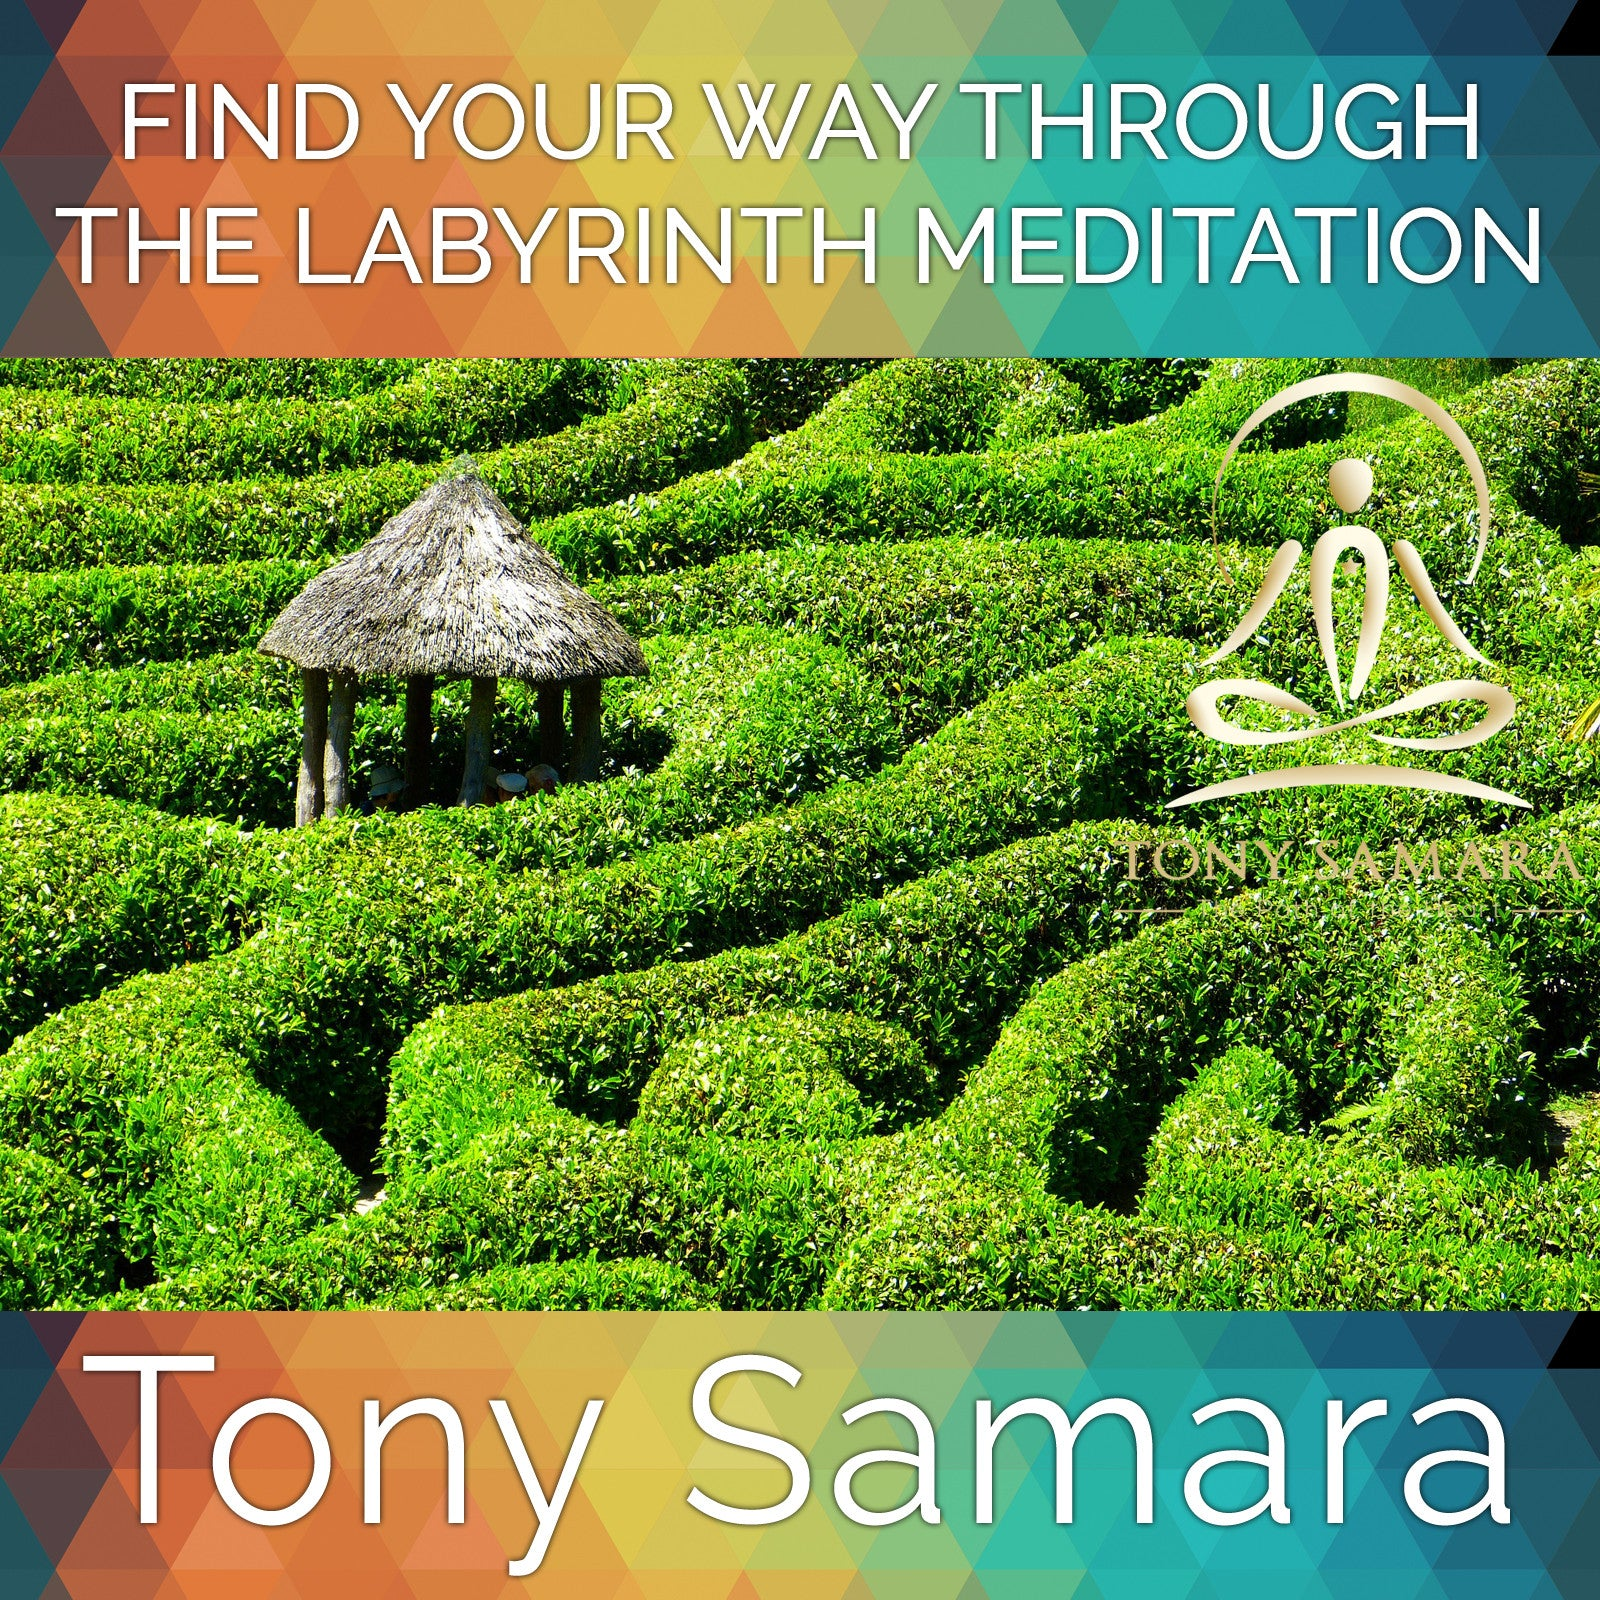 Find Your Way Through the Labyrinth Meditation (MP3 Audio Download) - Tony Samara Meditation